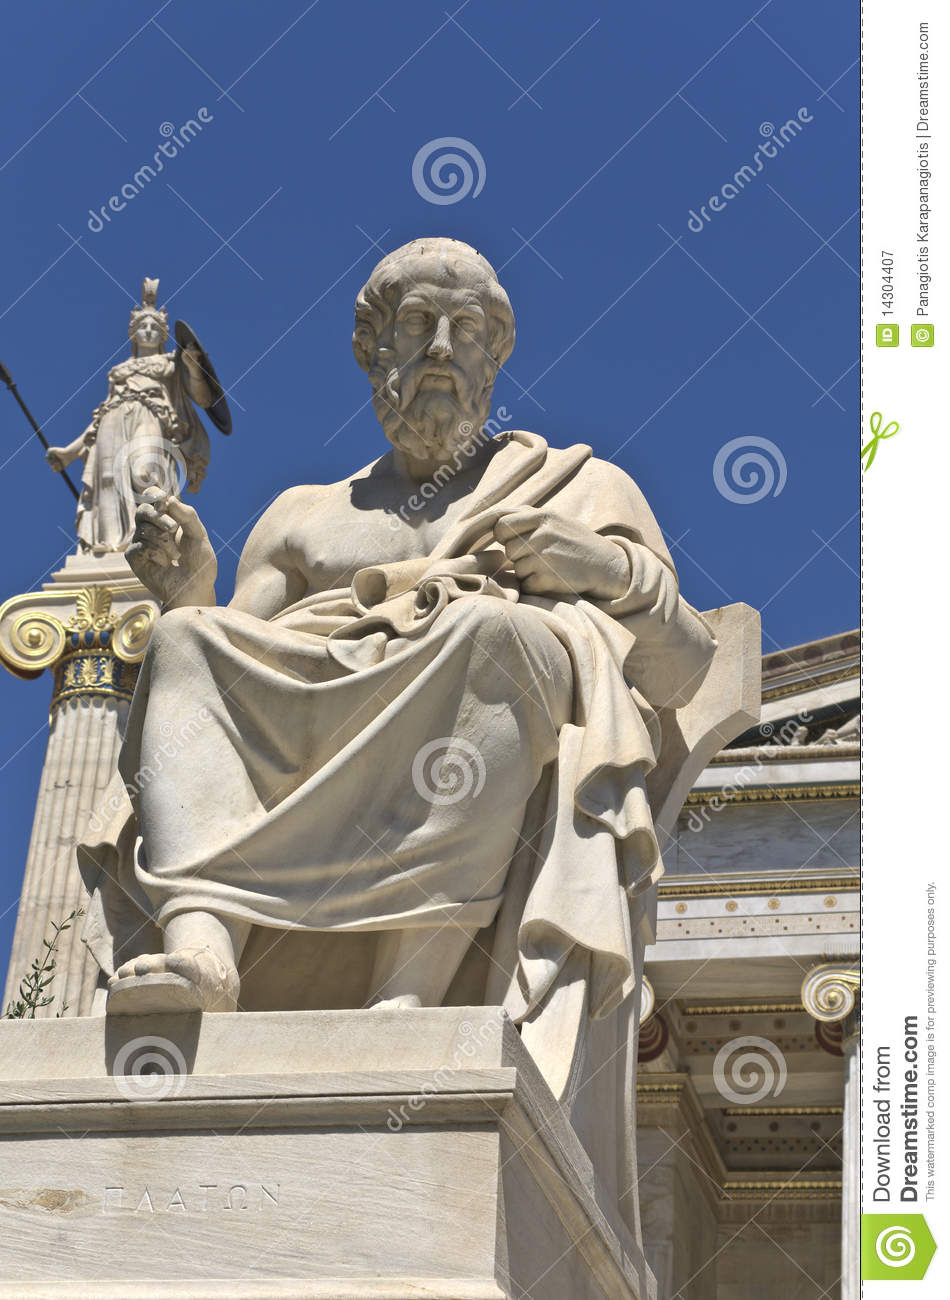 Plato Statue At The Academy Of Athens Greece Royalty Free